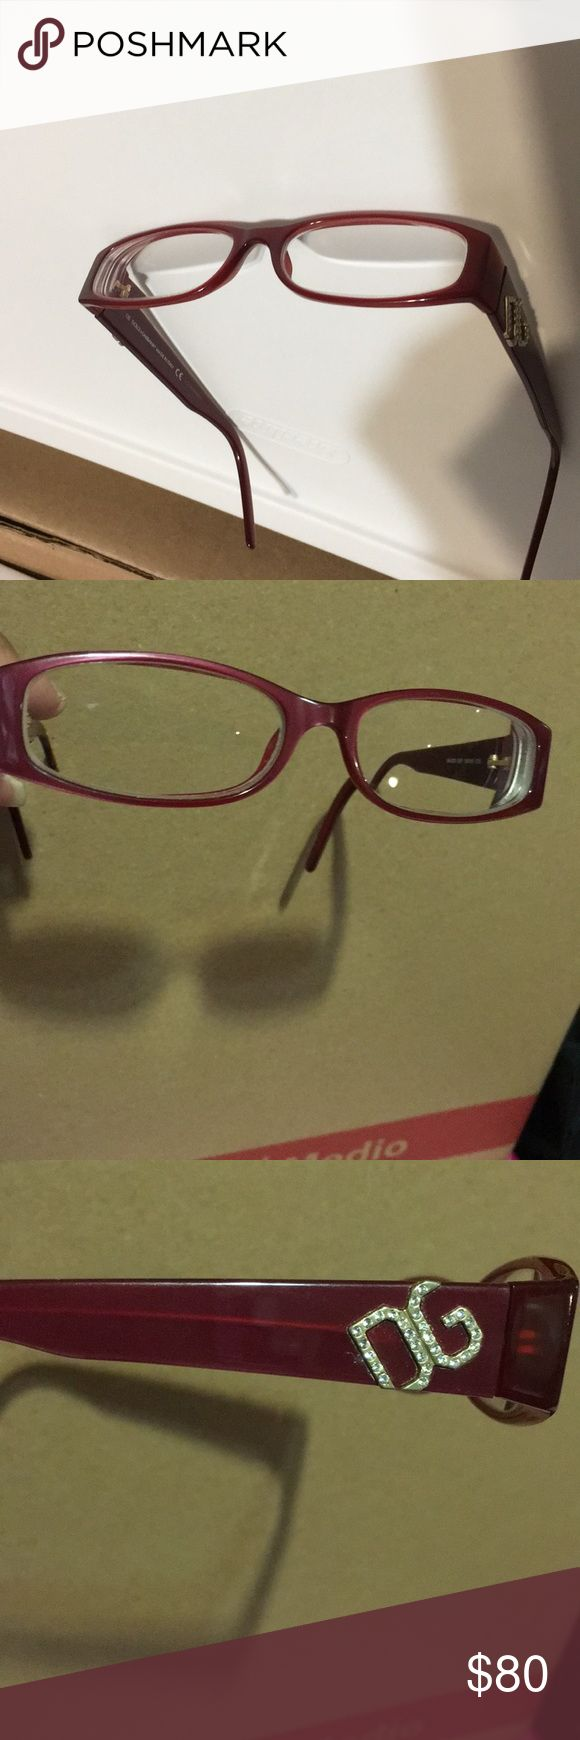 Dolce and Gabanna prescription eyeglasses Beautiful burgundy frame very stylish prescription glasses; can be replaced with your prescription by qualified professional.  Very good condition, see pics for minor scratches on frame Dolce & Gabbana Accessories Glasses